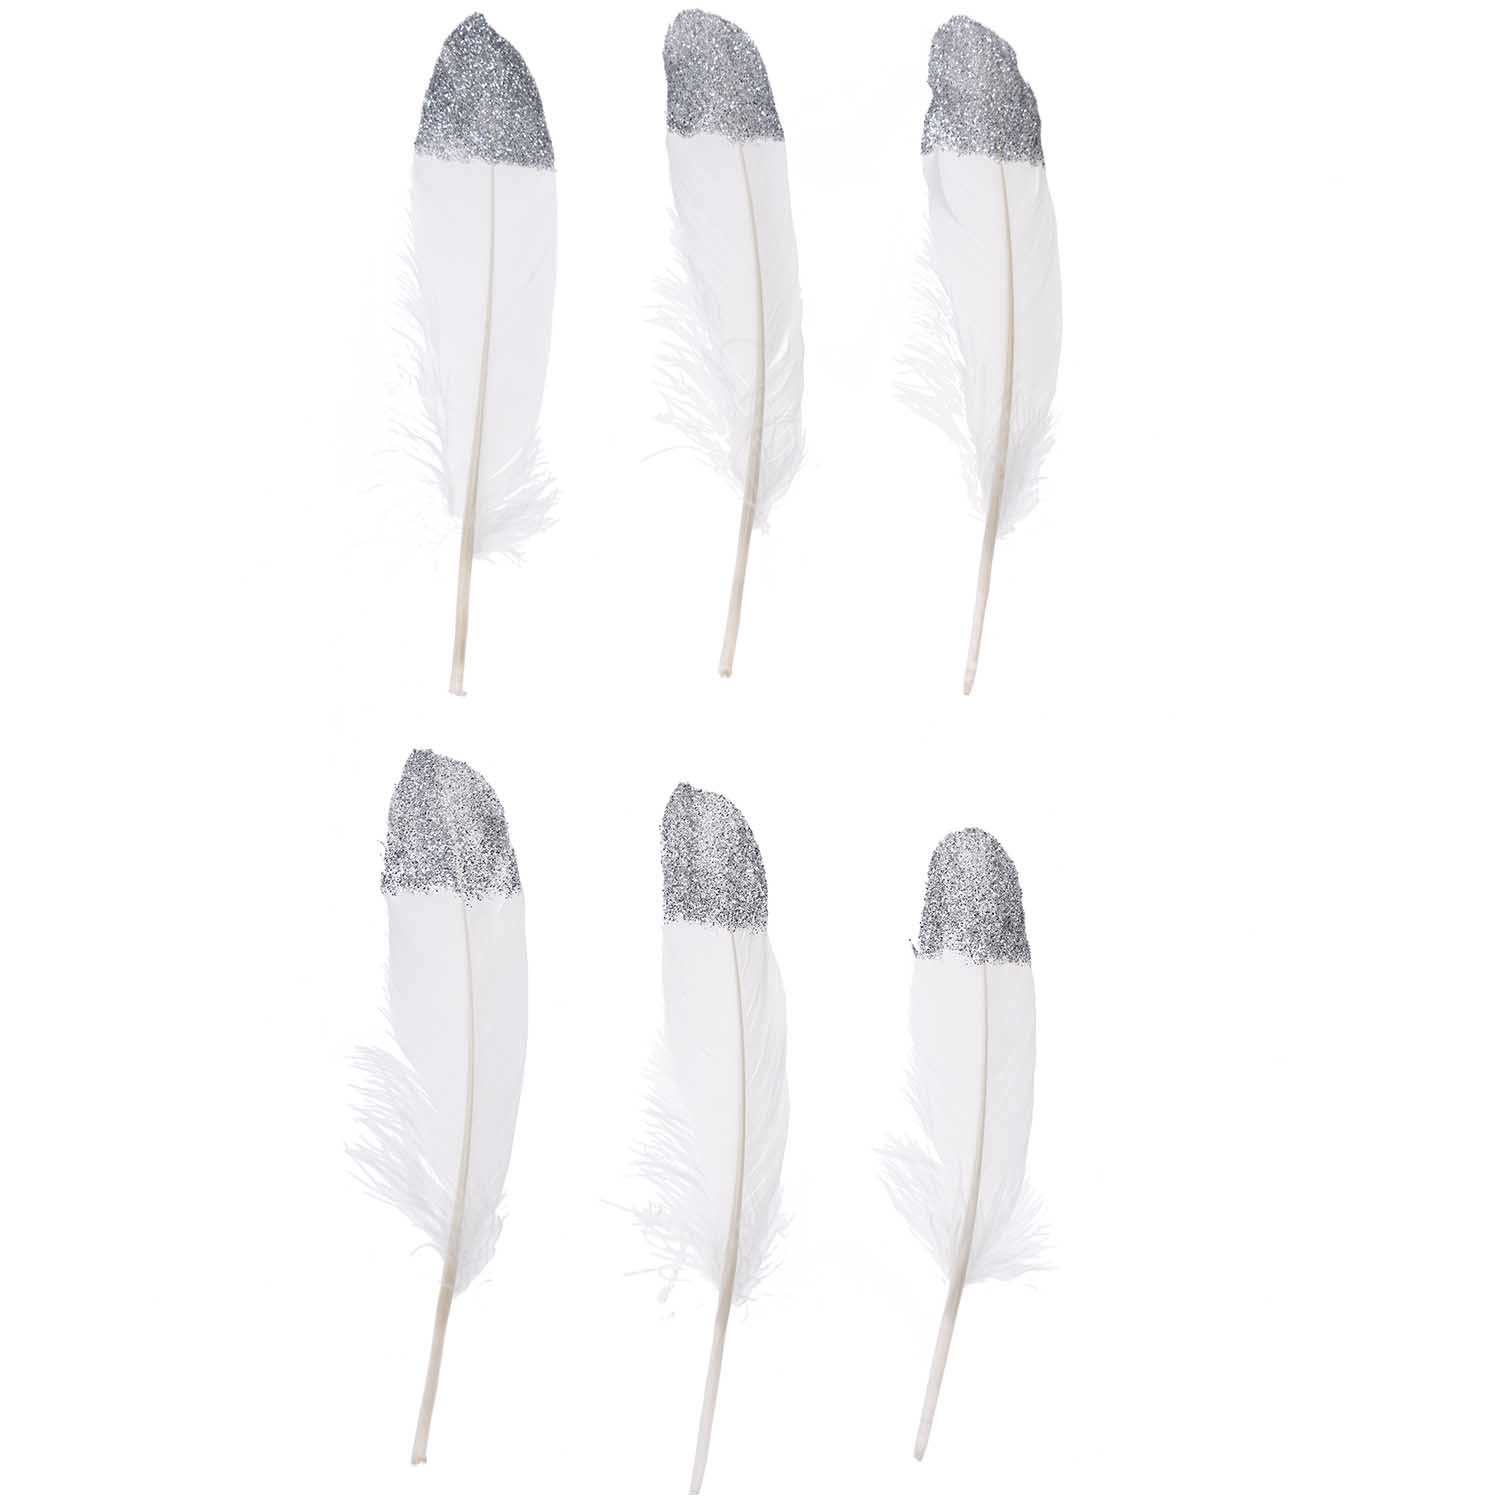 Rico NAY FEATHERS, WHITE/SILVER 6 PCS, CA. 18 CM